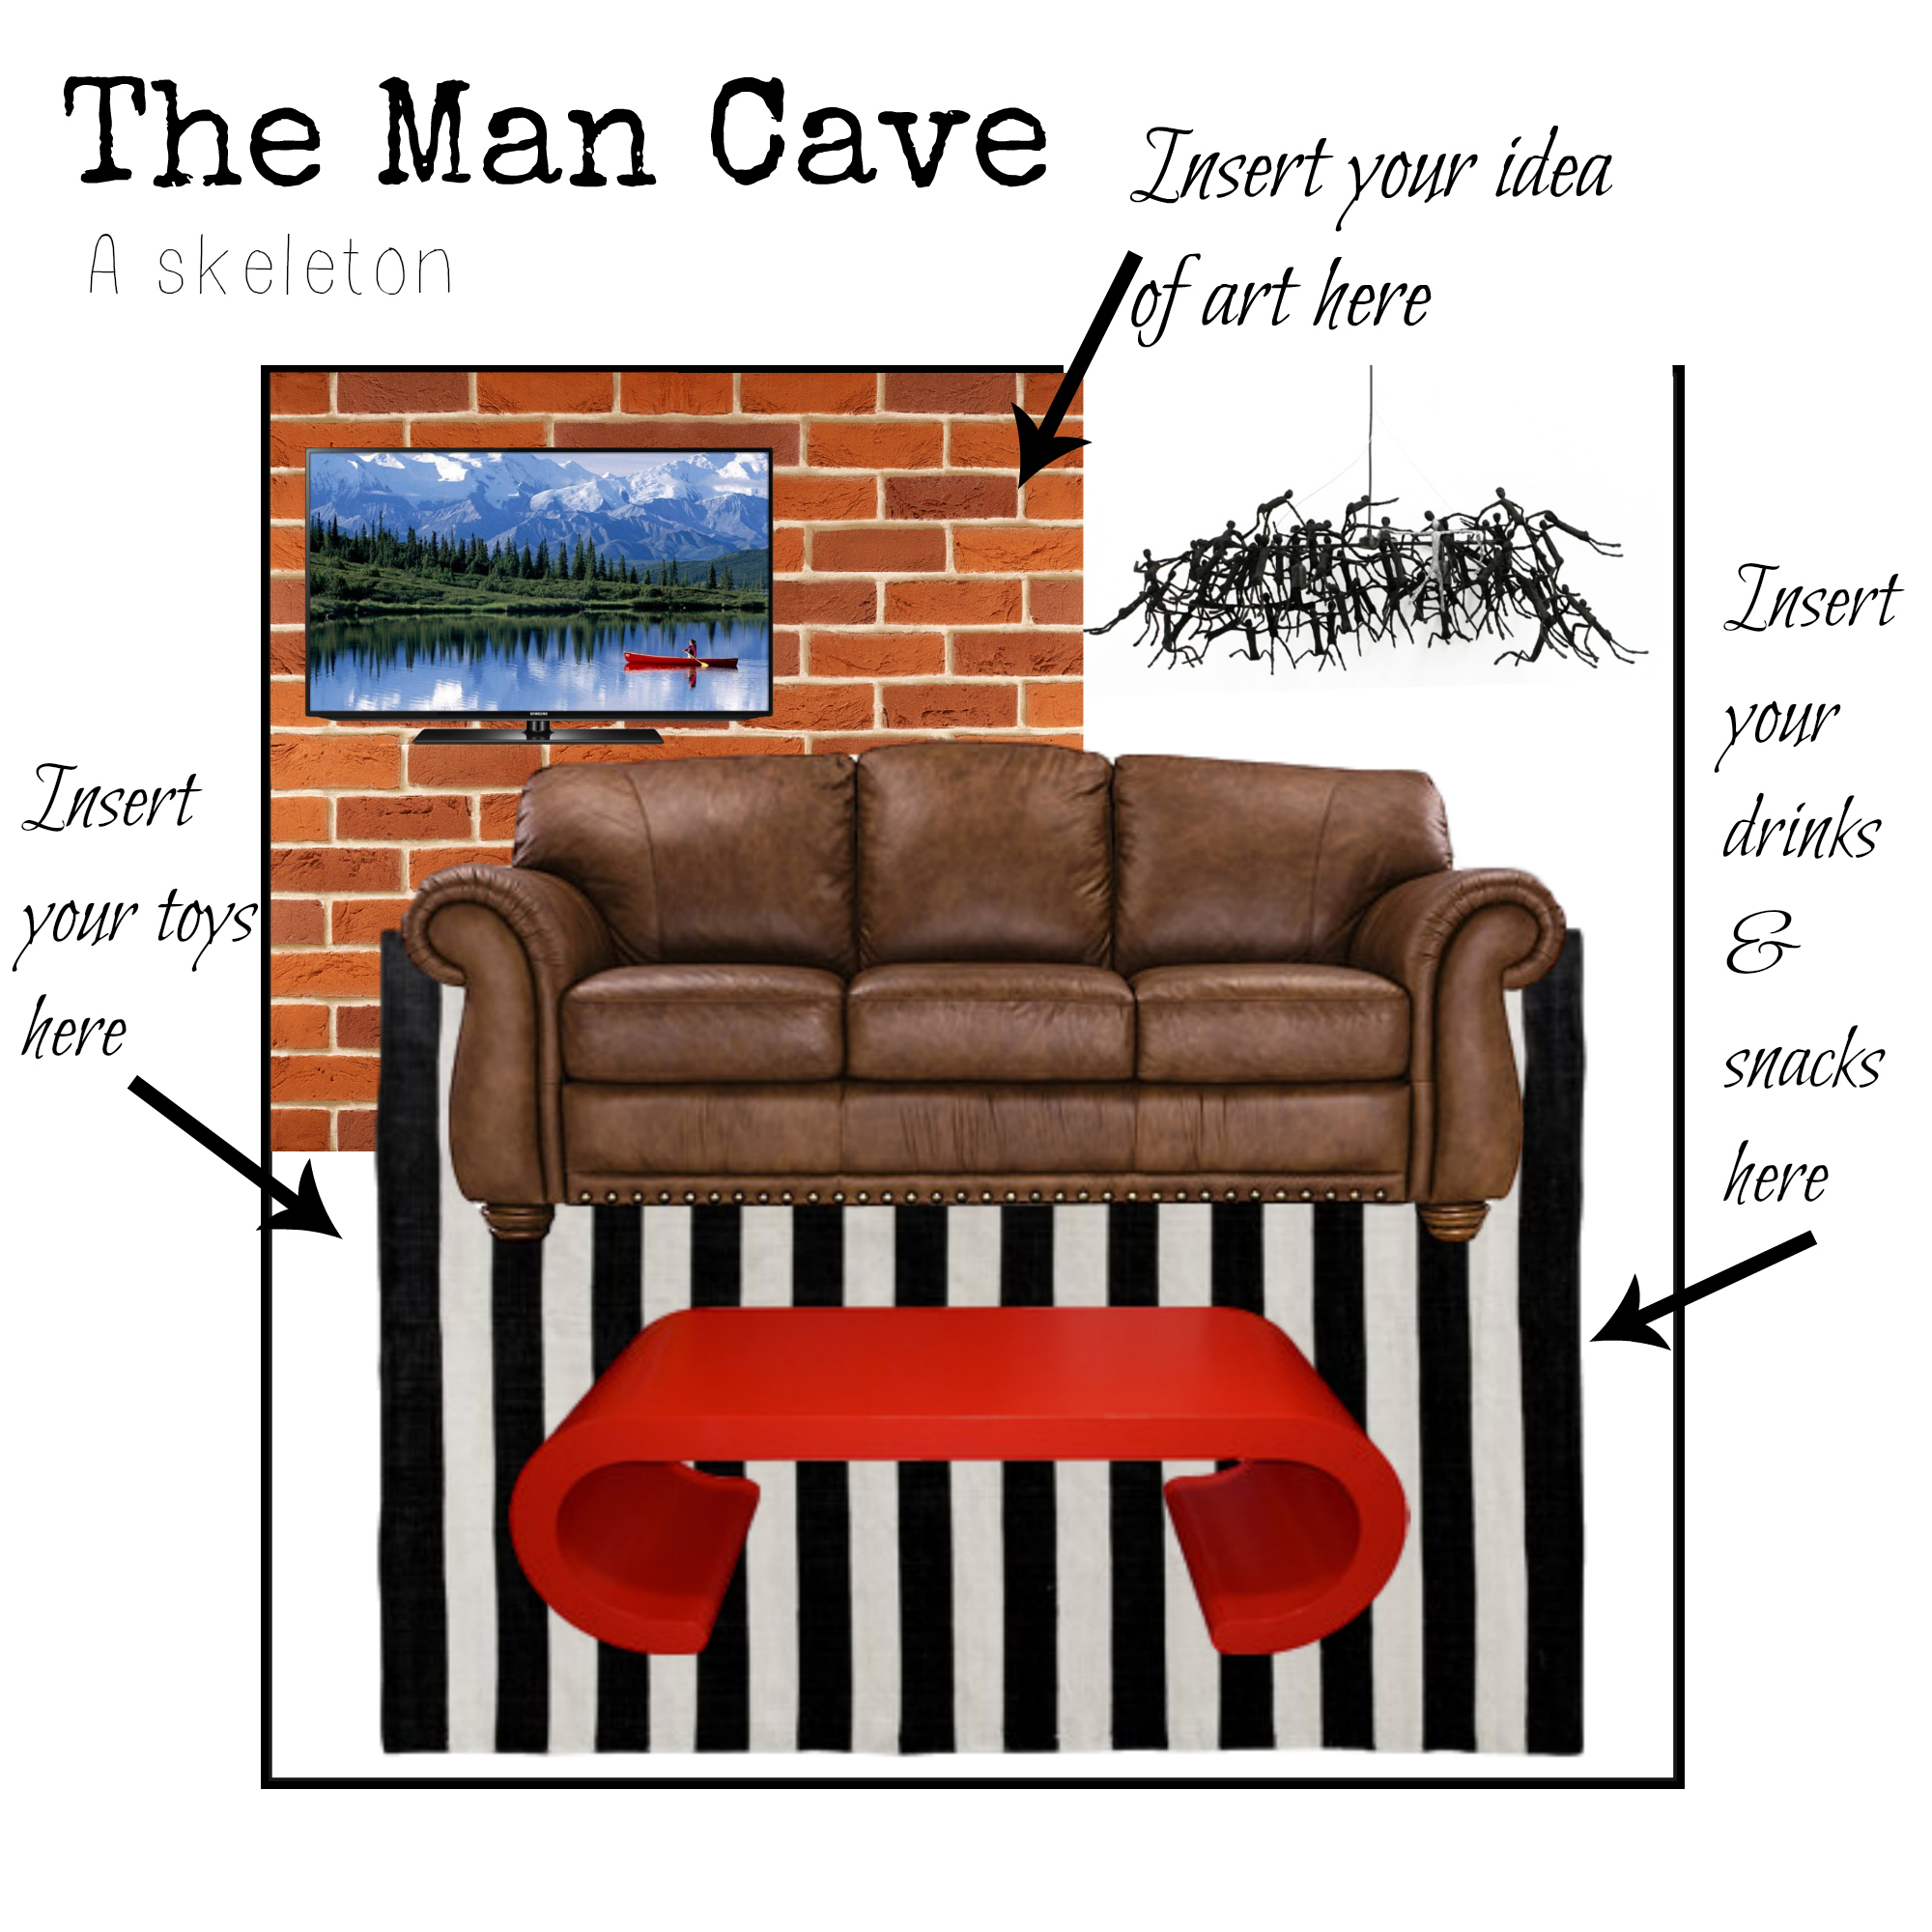 The man cave - what you need to get started